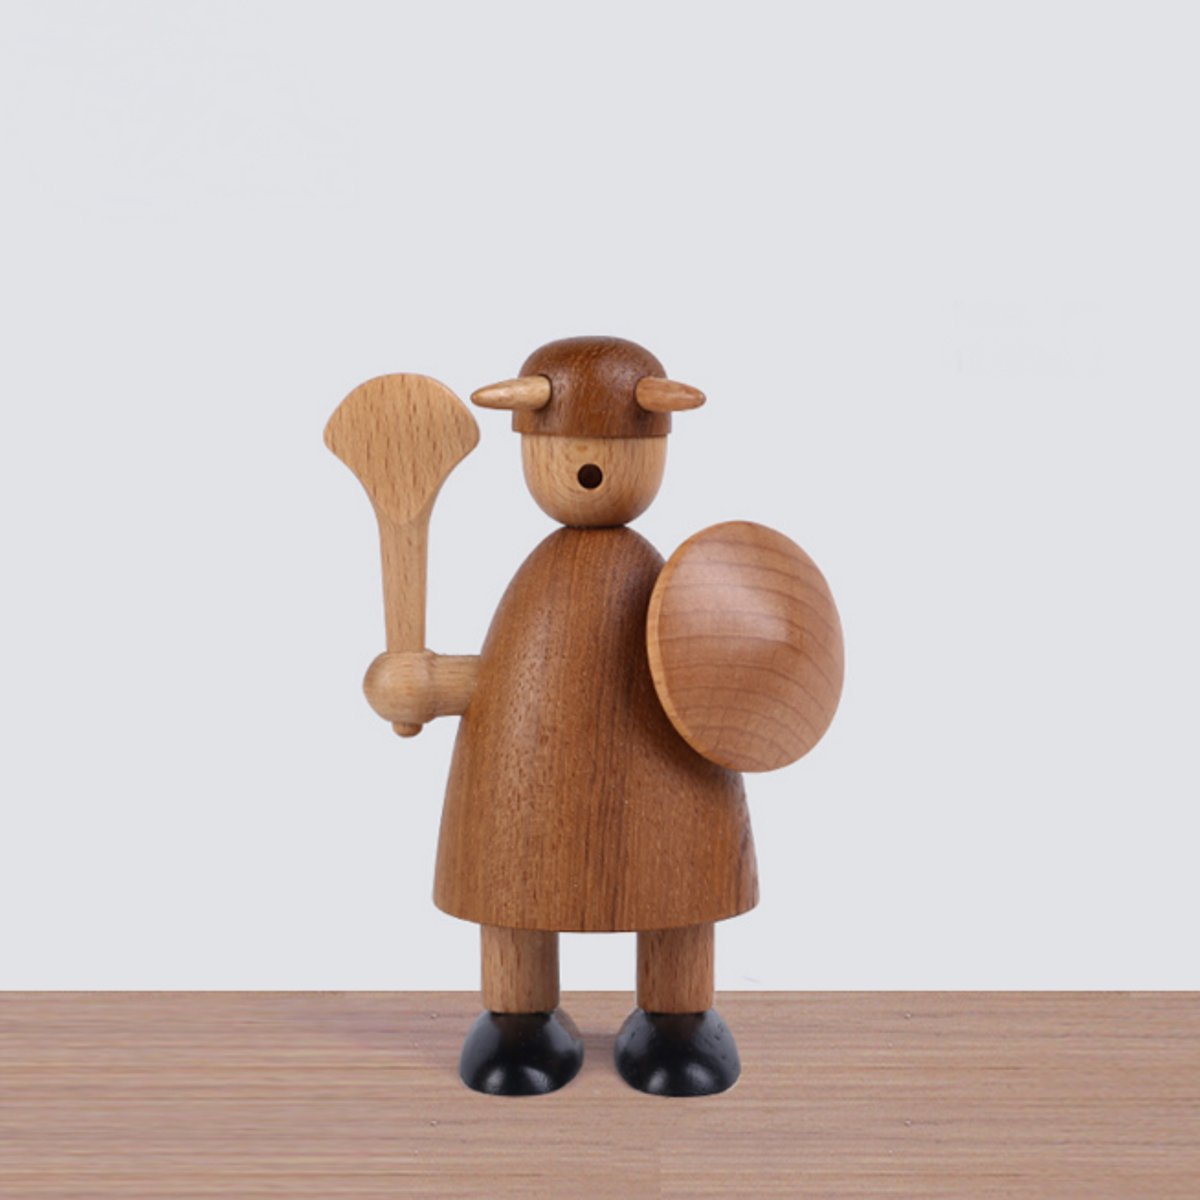 Denmark Style Viking Action Figure Sparrow Animals Wooden Doll Teak Puppet Home Desktop Decor Toy Gift